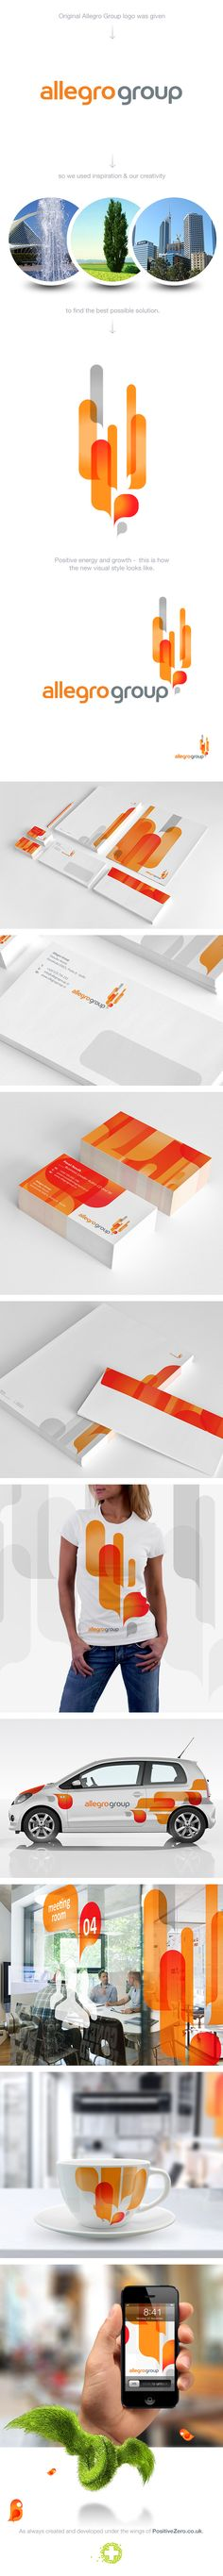 Allegro Group - Corporate Identity by PositiveZero.co.uk , via Behance